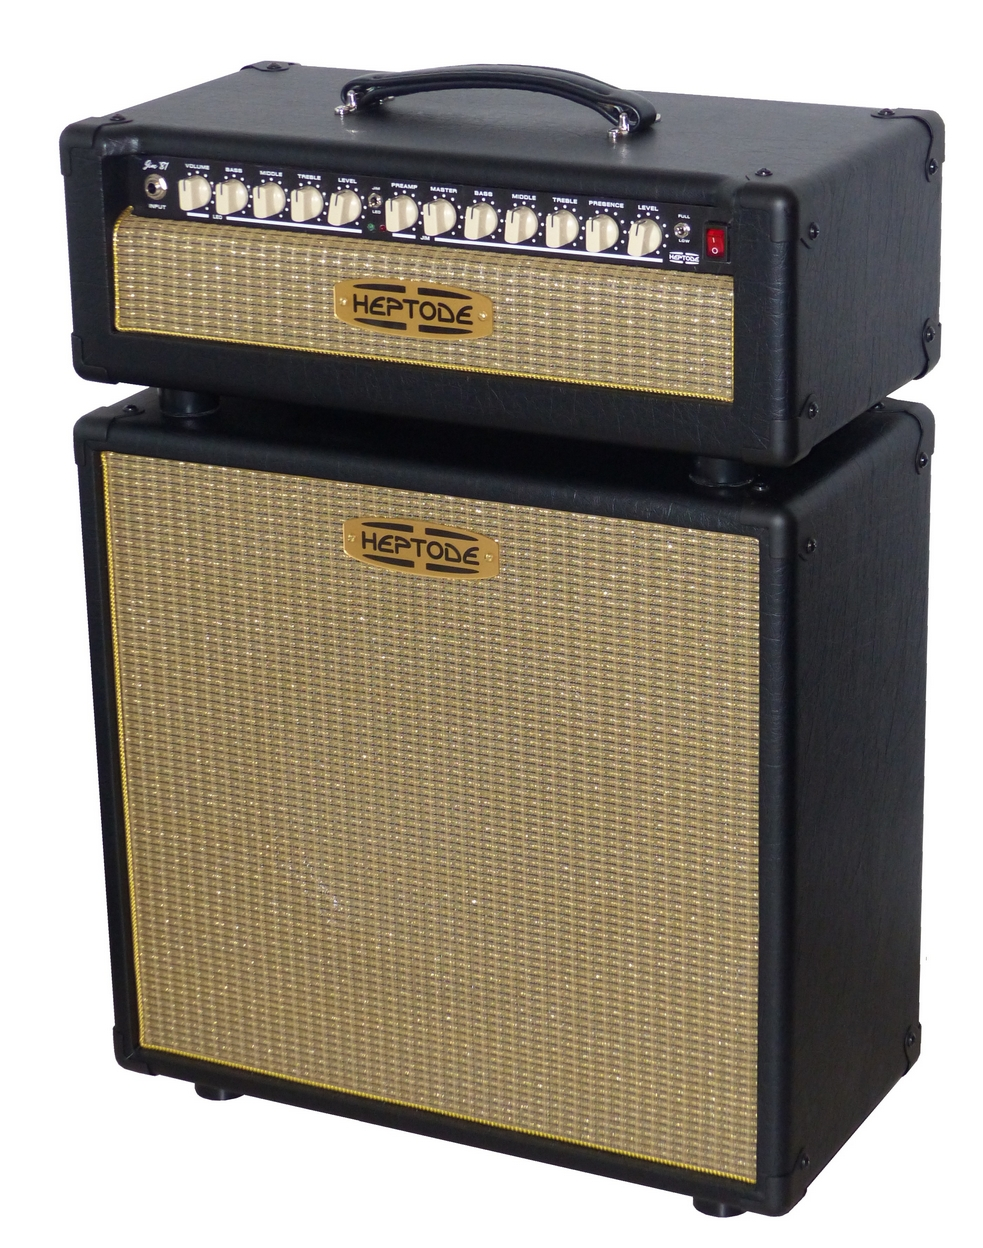 Heptode Jim'81 head and 1x12 cabinet